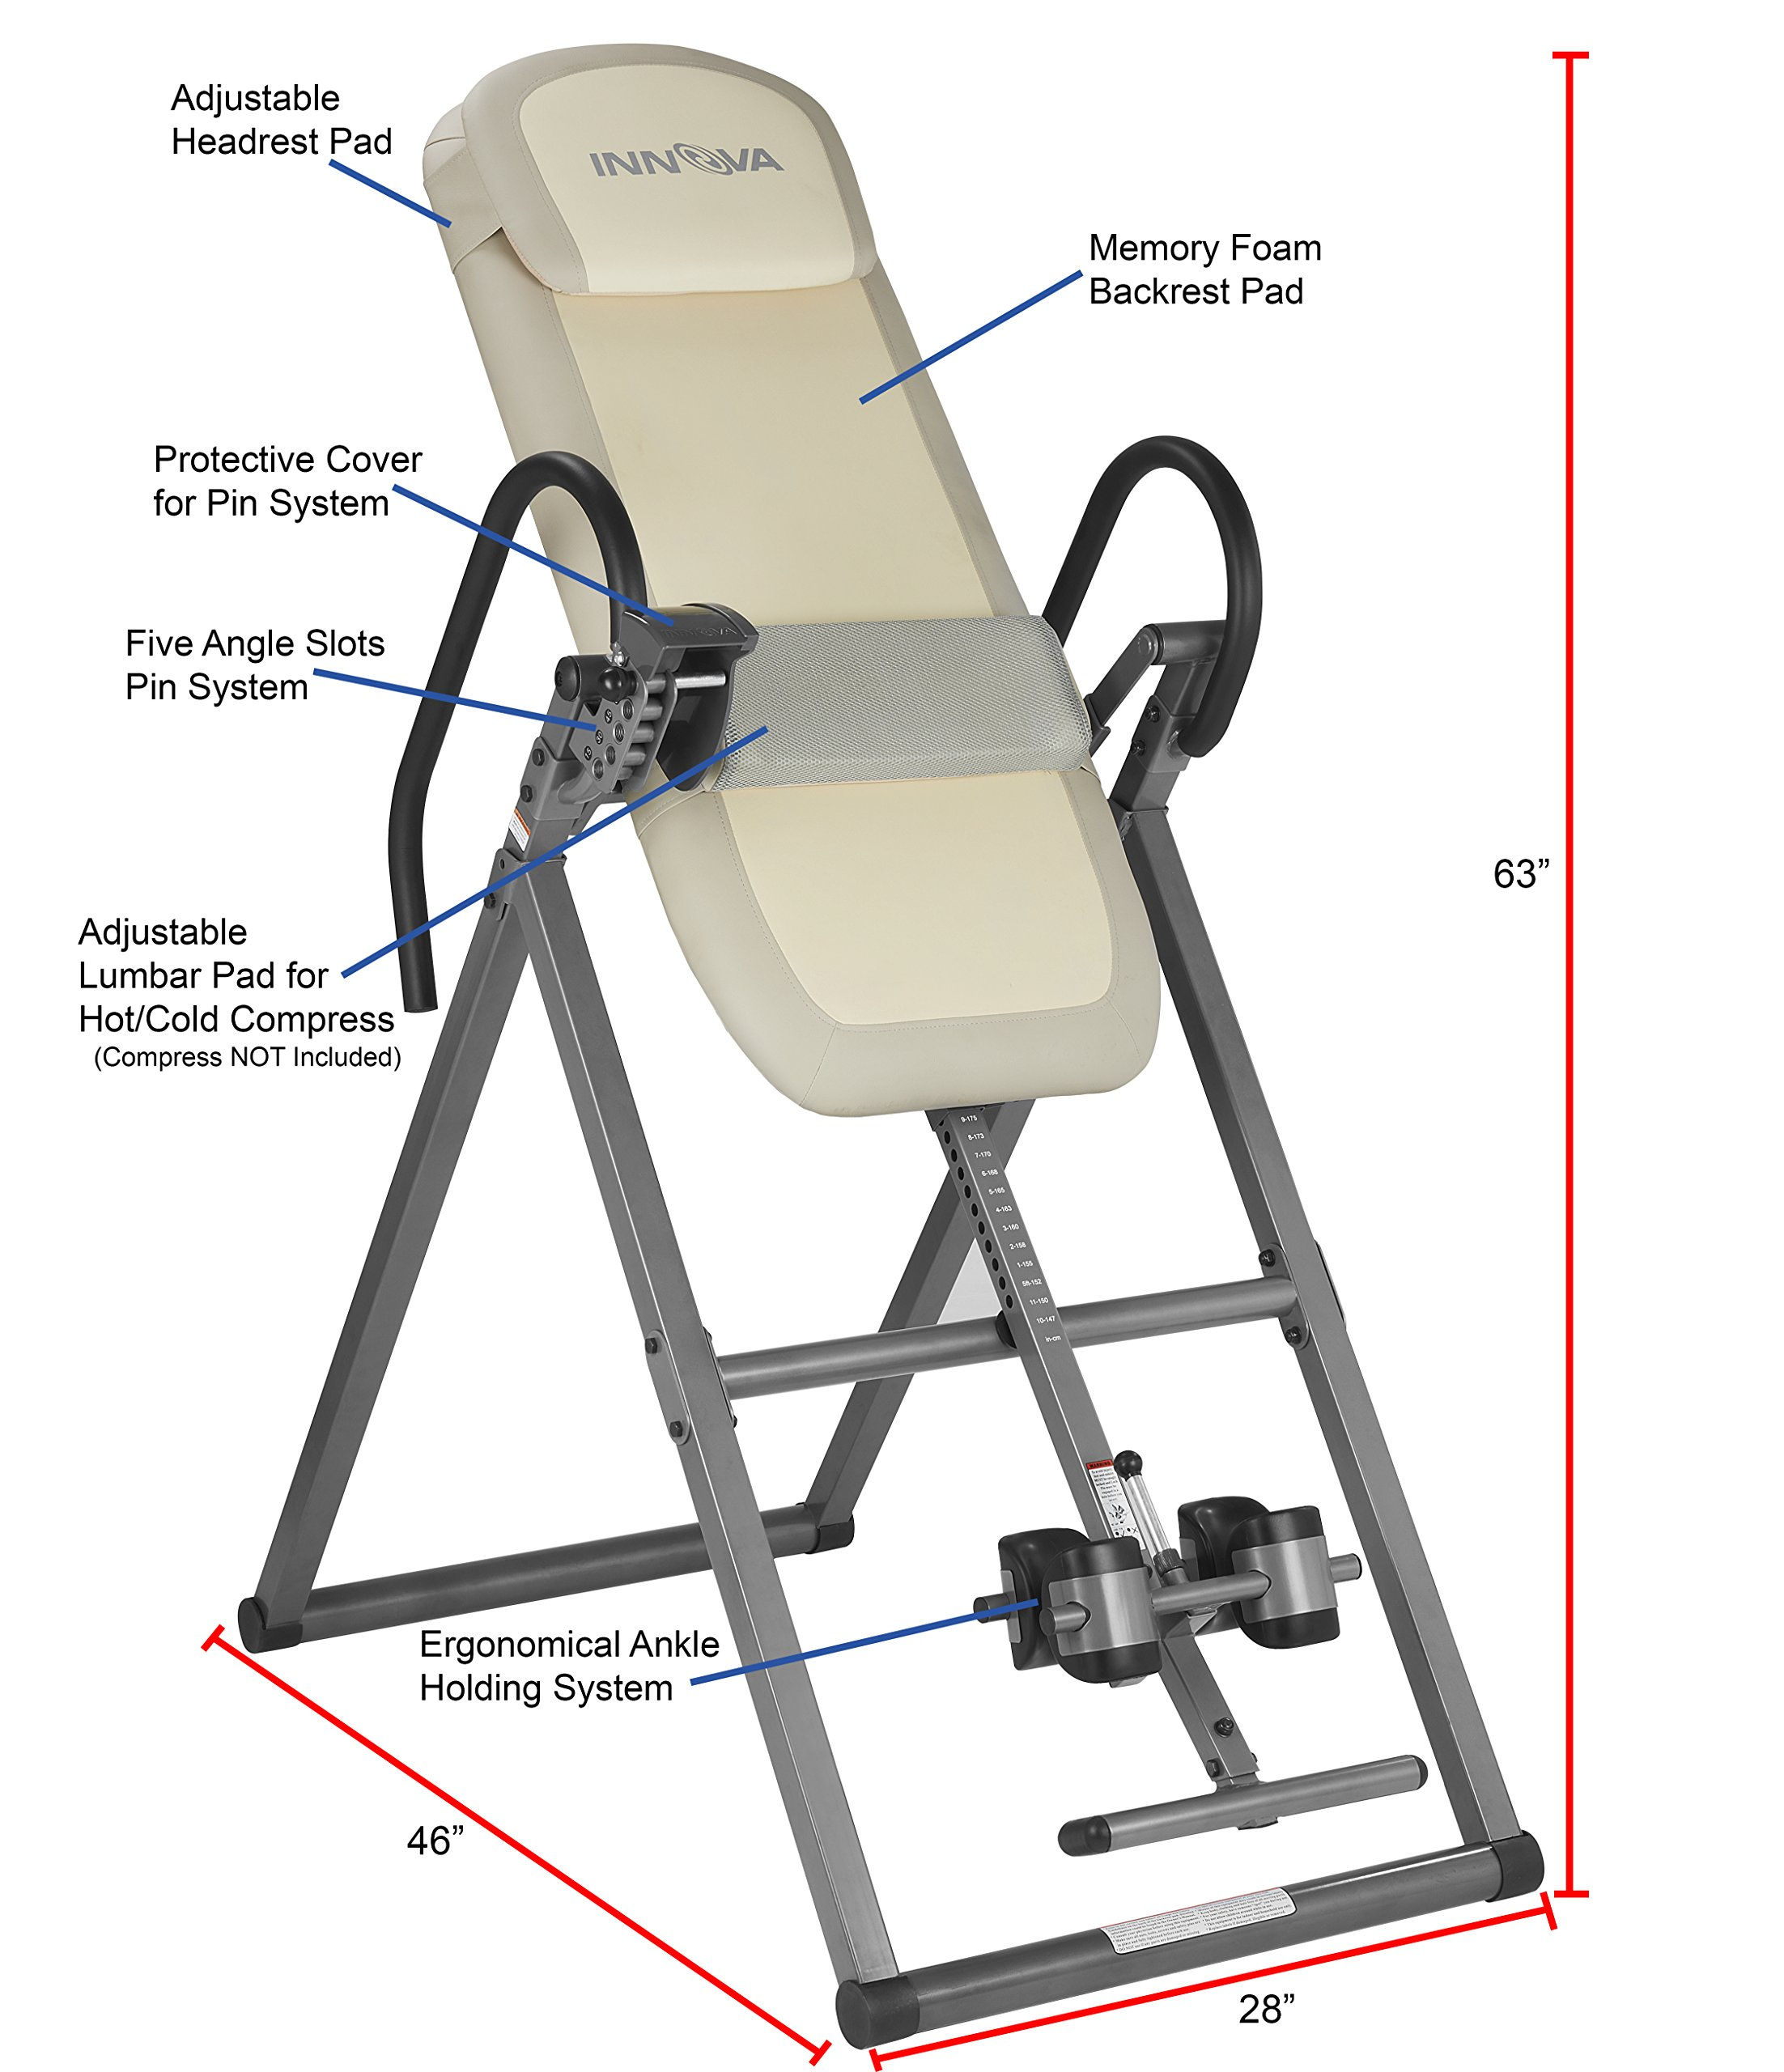 Innova ITX9700 Memory Foam Inversion Table with Lumbar Pad for Hot and Cold Compress by Innova Health and Fitness (Image #2)